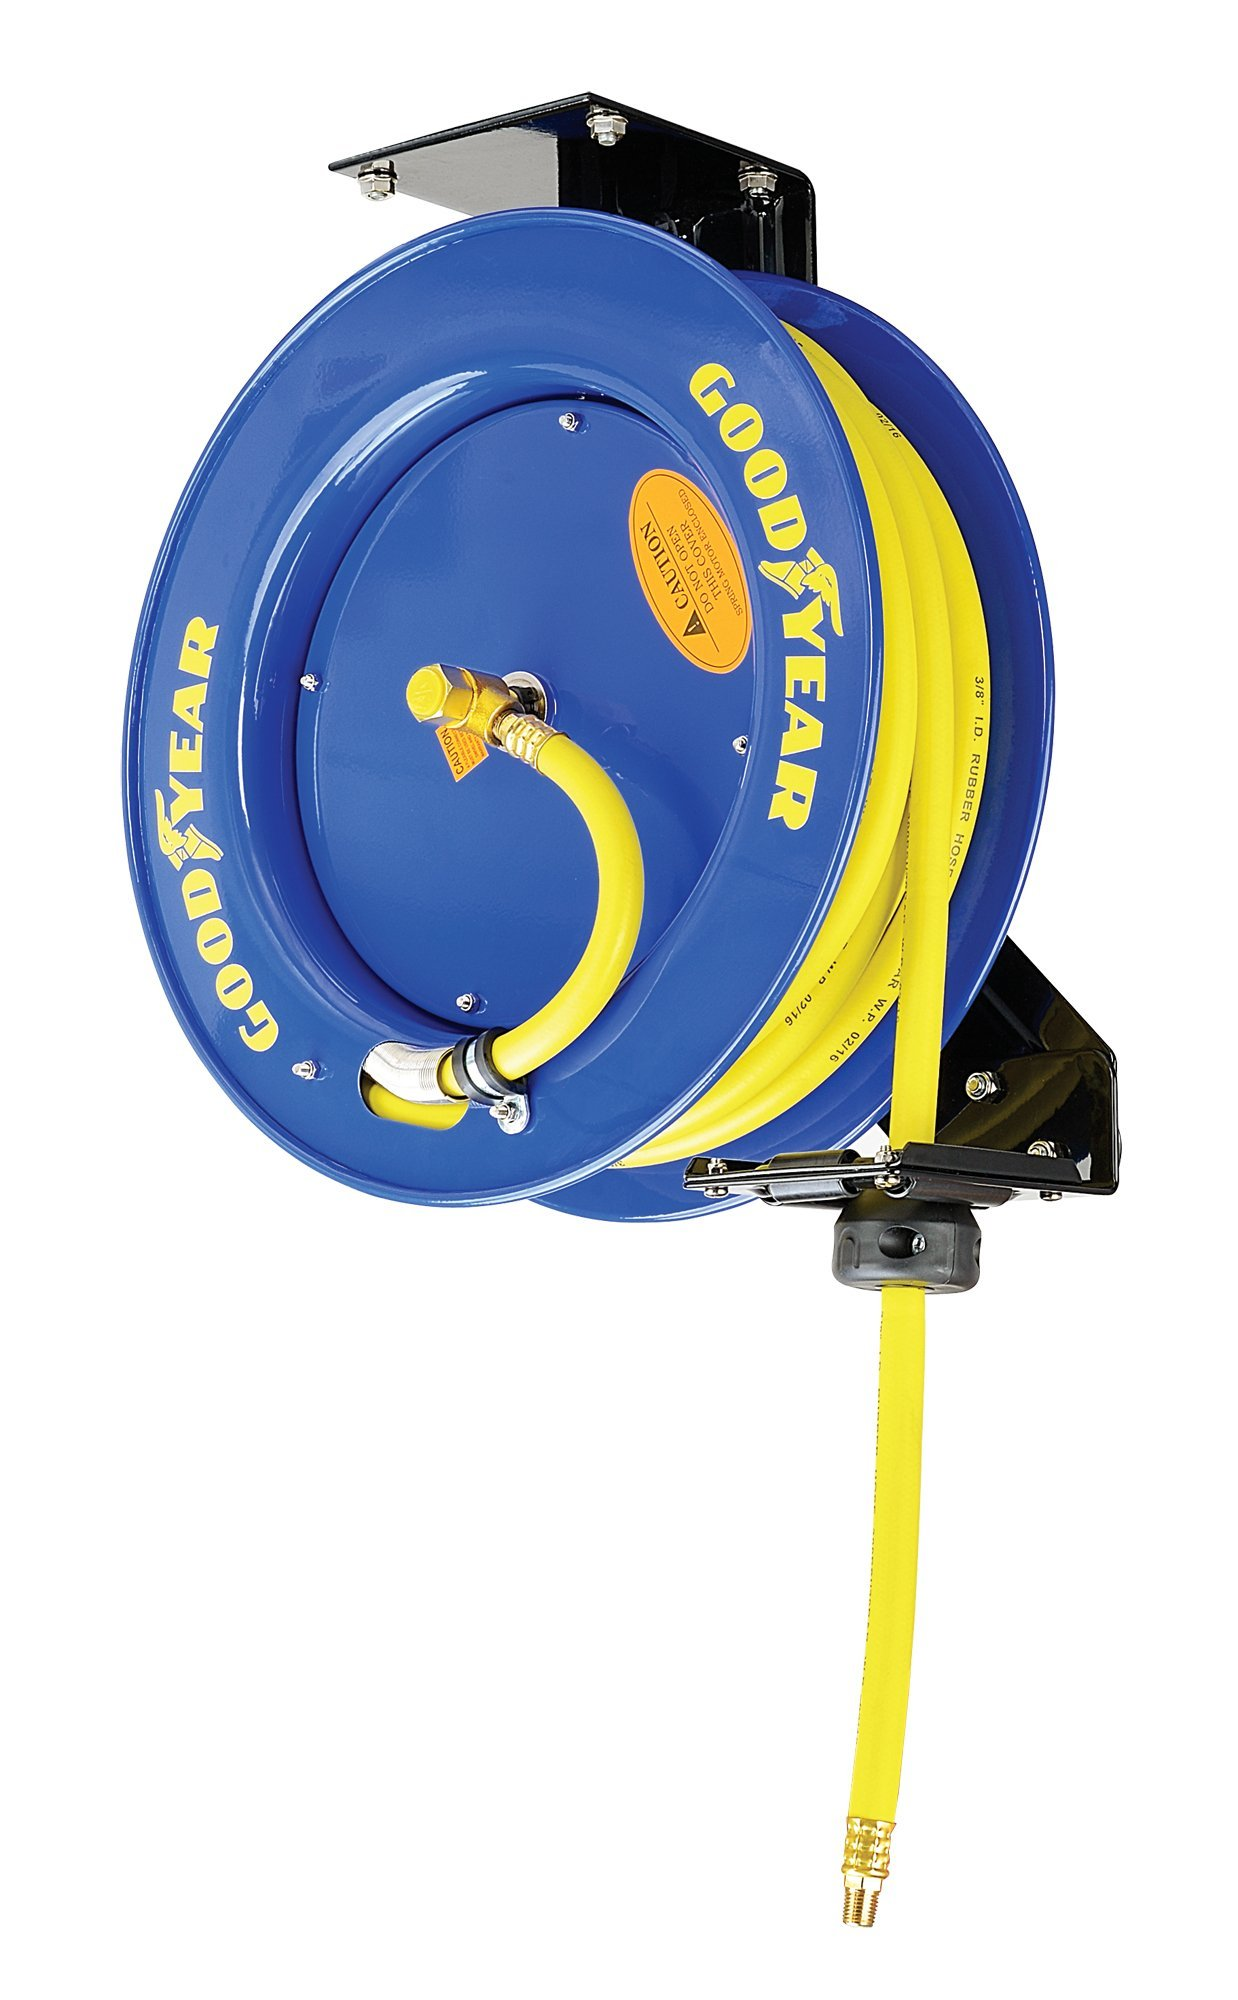 Goodyear L815153G Steel Retractable Air Compressor/Water Hose Reel with 3/8 in. x 50 ft. Rubber Hose, Max. 300PSI by Goodyear (Image #9)